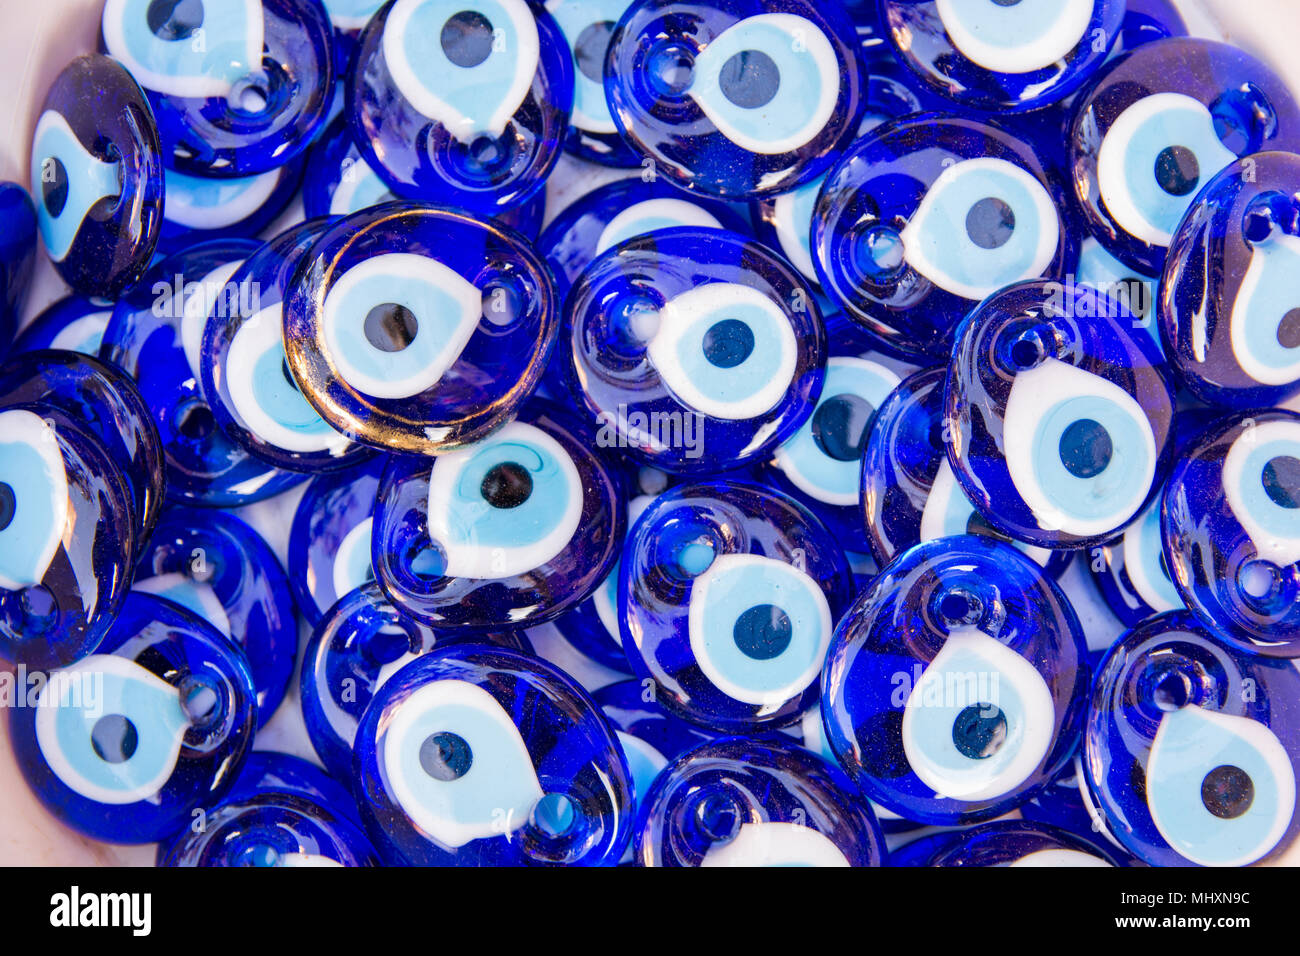 Evil eye bead souvenirs broken glass is melted and shaped  In